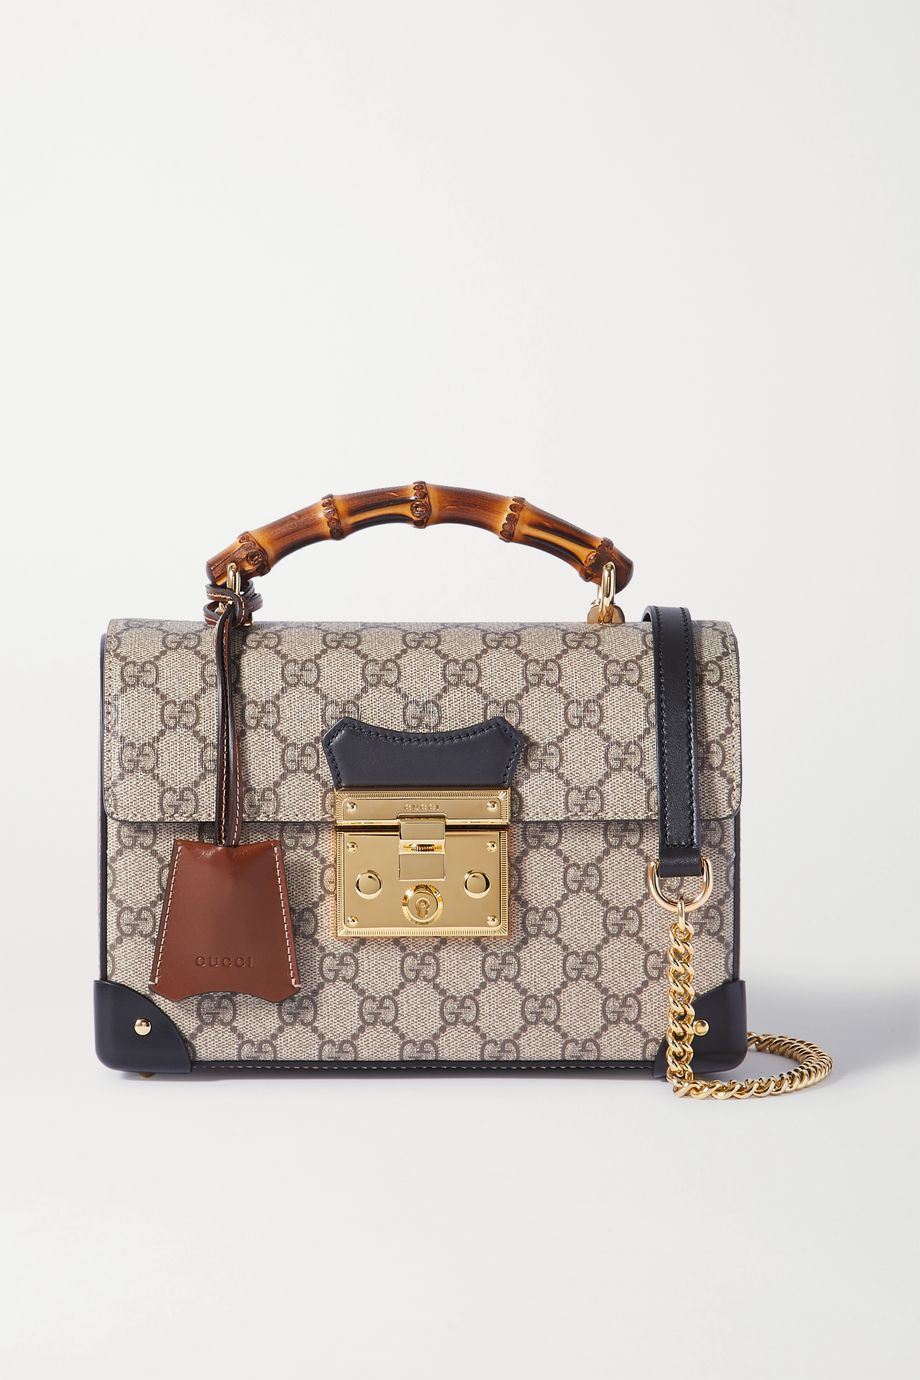 Gucci Padlock small leather-trimmed printed coated-canvas tote